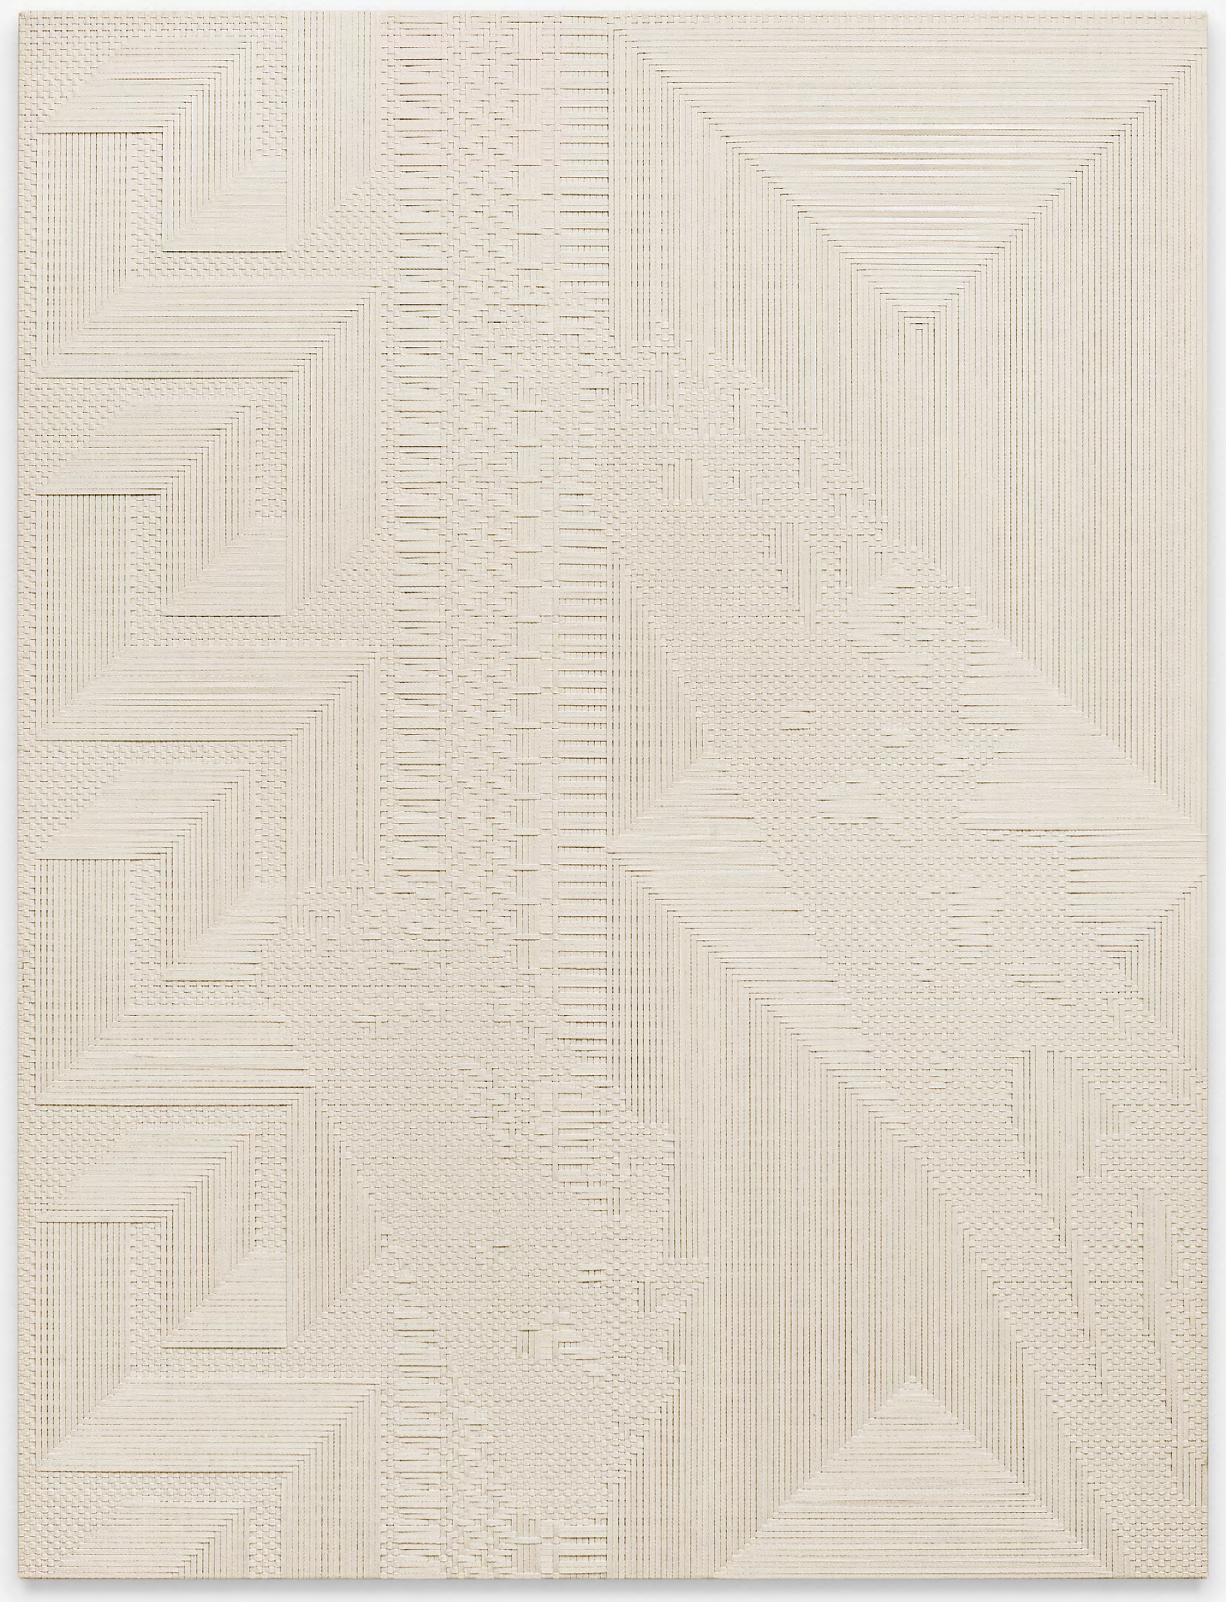 """Chiral Fret / Slice,"" 2014. Woven canvas on wooden stretcher. 72 x 54 inches. Courtesy of Standard (Oslo). Photograph by Vegard Kleven."